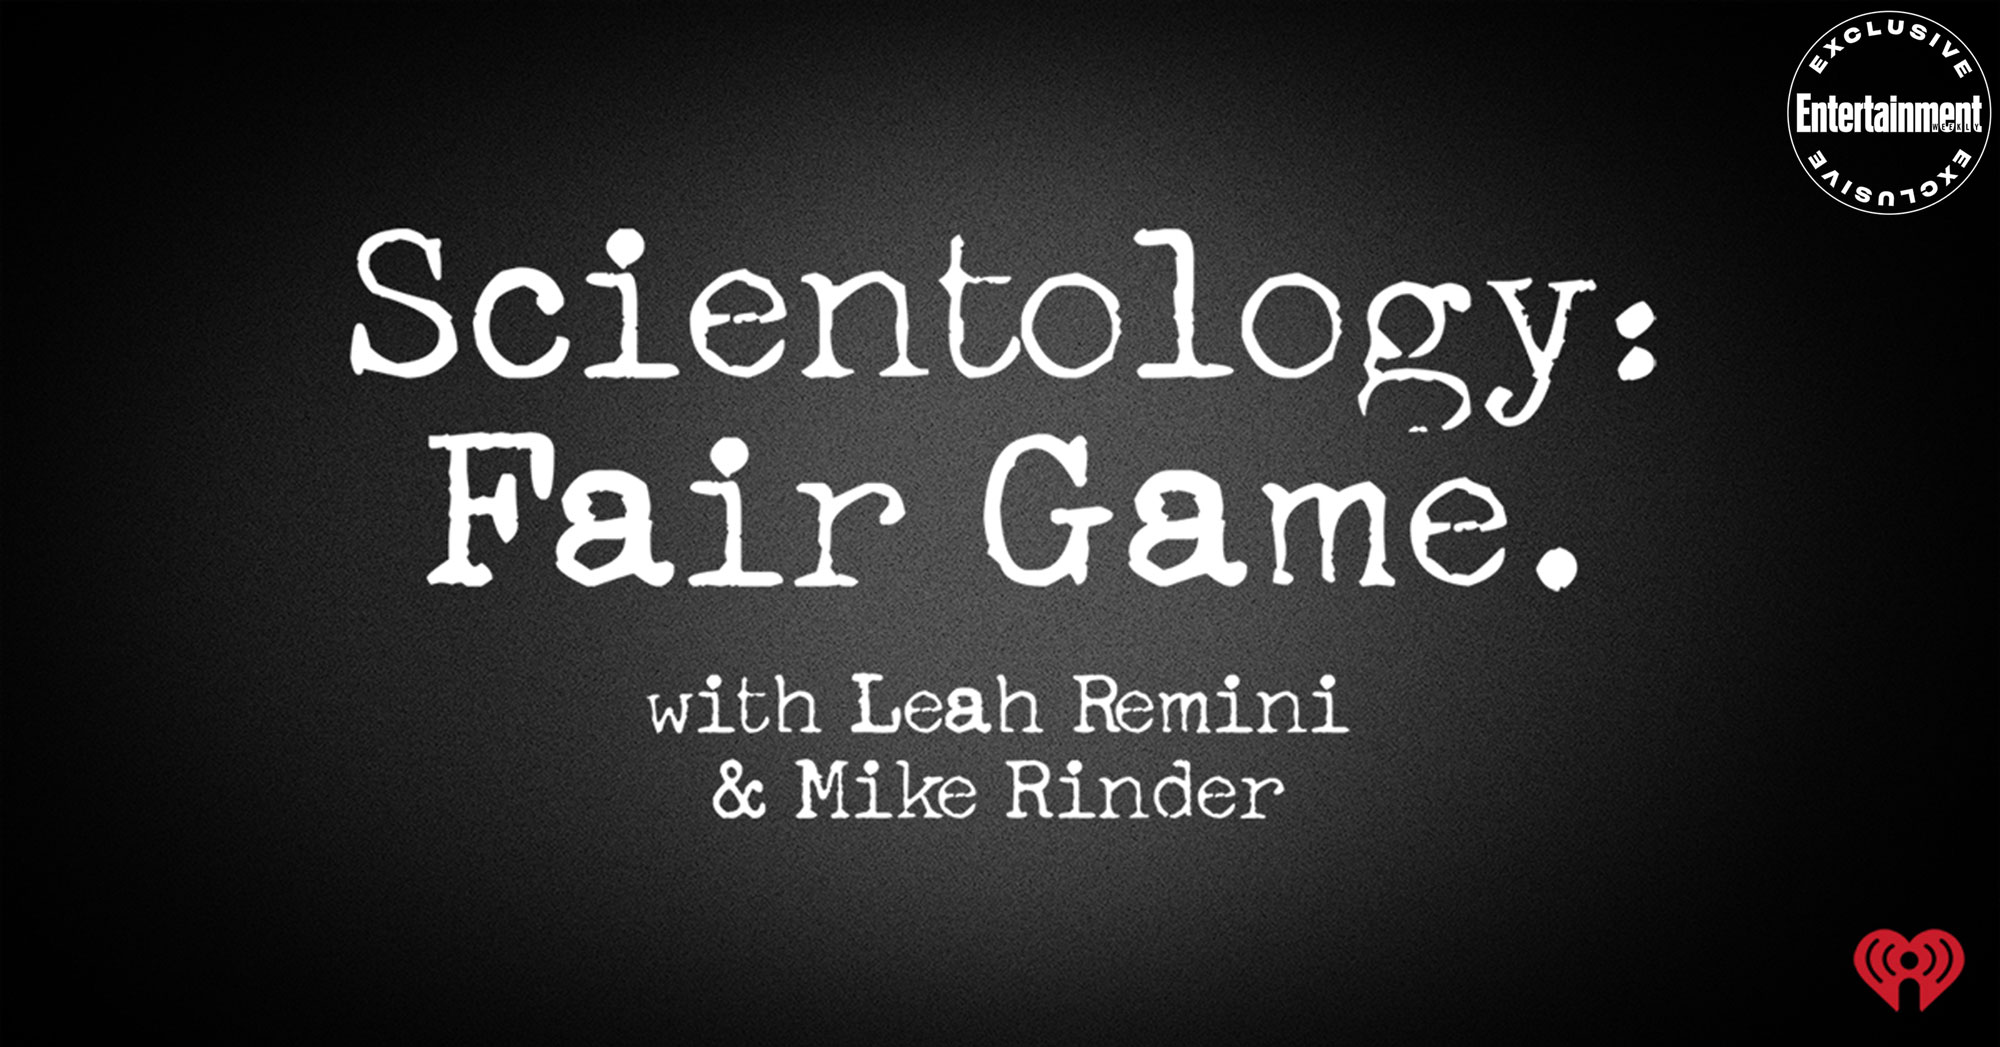 Scientology Fair Game